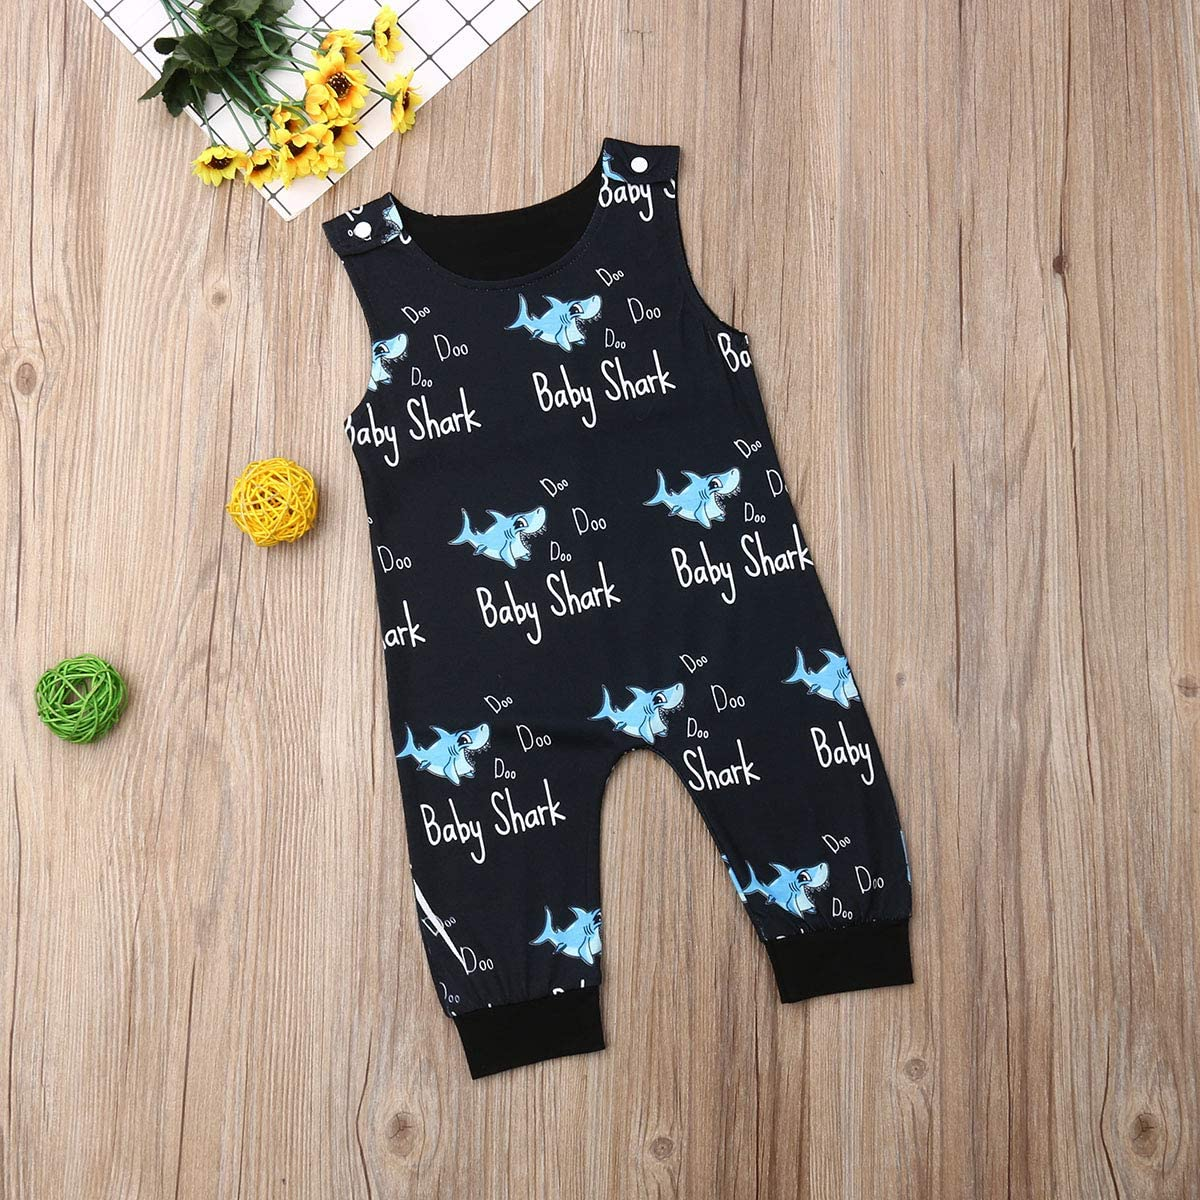 Infant Toddler Baby Boys Sleeveless Romper One-Piece Jumpsuit Toddler Clothes Star Wars Outfits Clothing